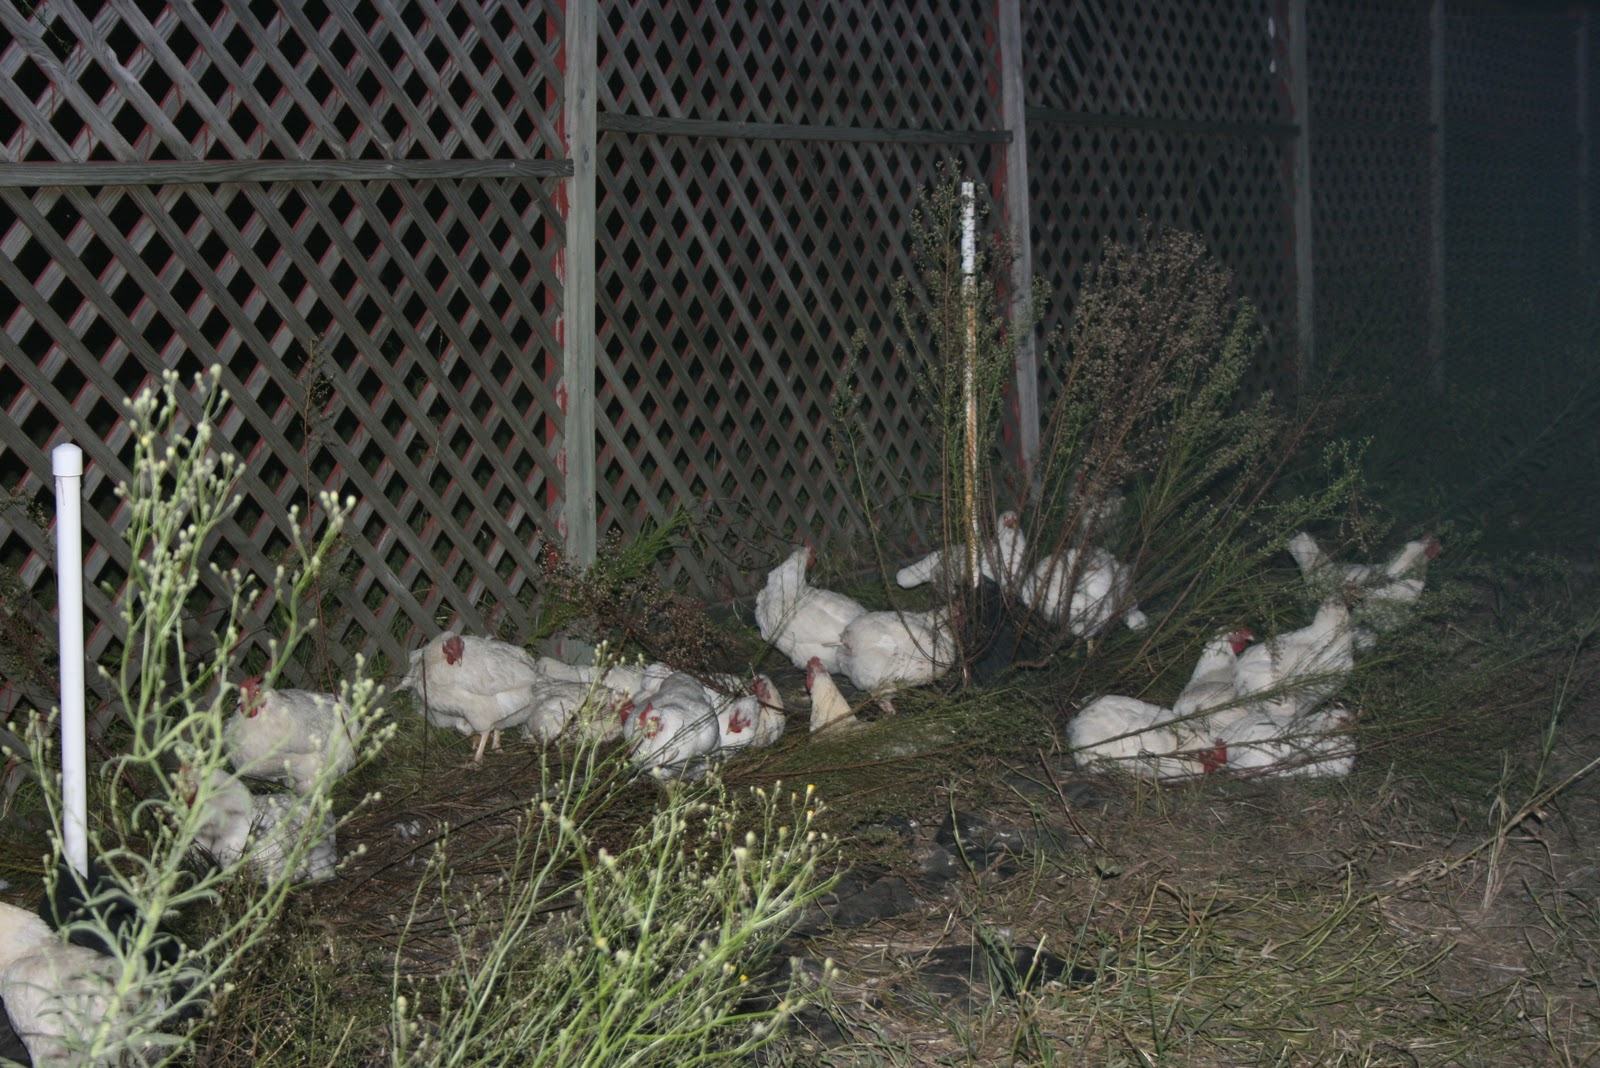 Challenged Survival: The New Chicken Pen